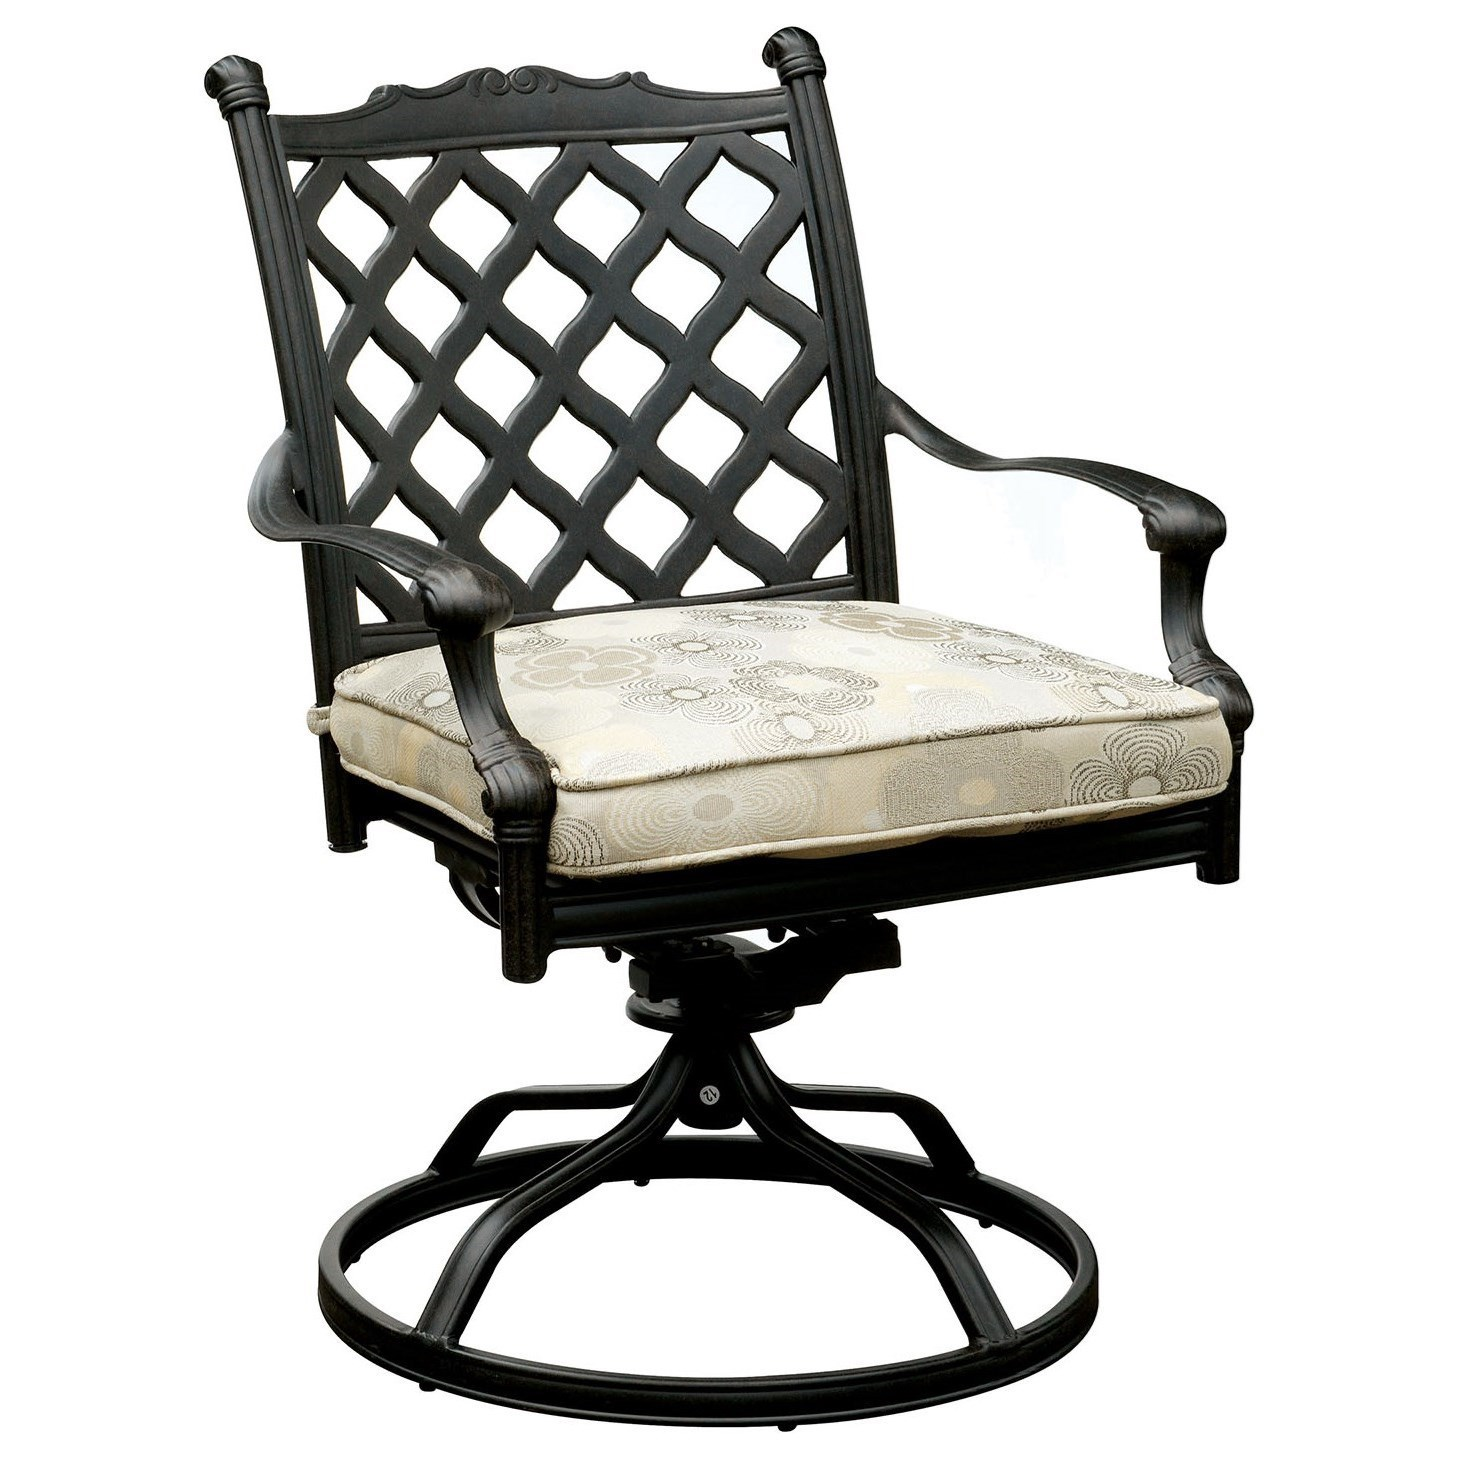 outdoor swivel rocker chair office chairs nyc furniture of america chiara i traditional rock dining with cushion set 2